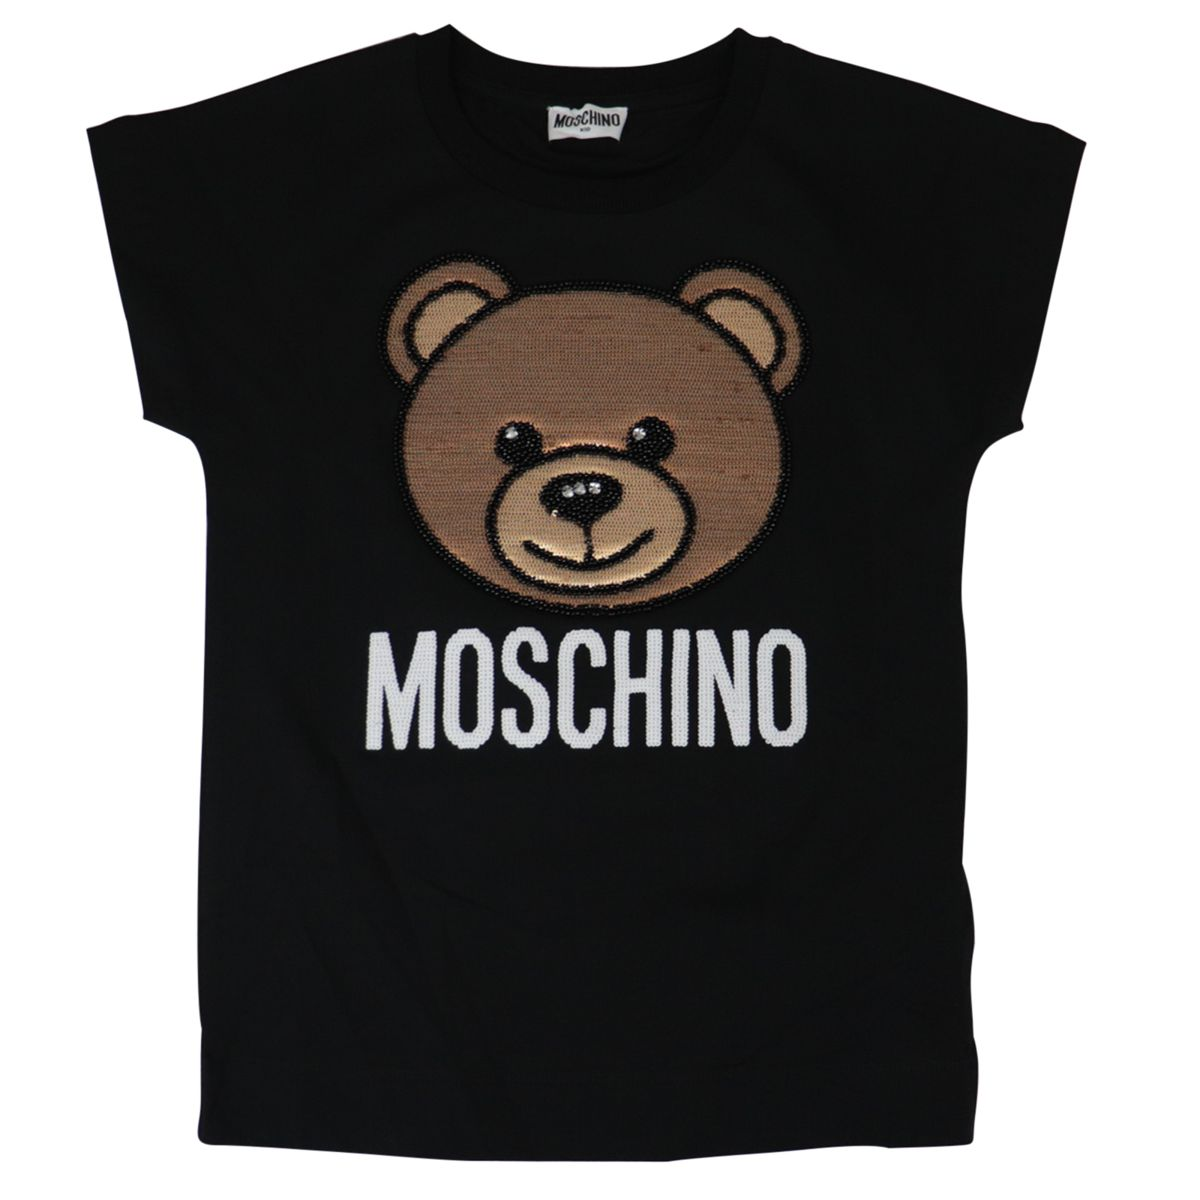 Cotton t-shirt with bear logo embroidery Black Moschino